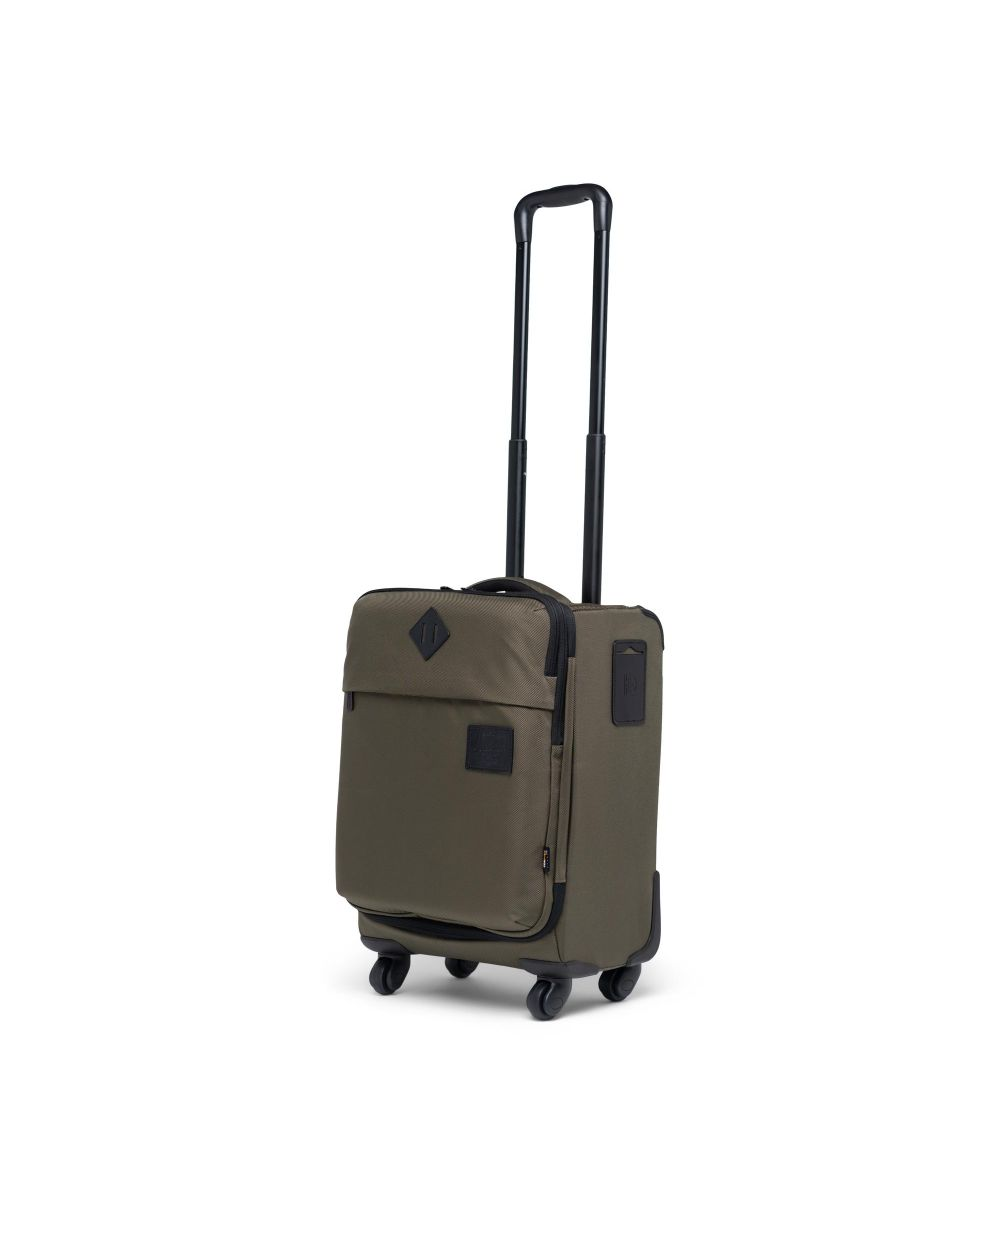 Herschel highland carry on luggage in brown